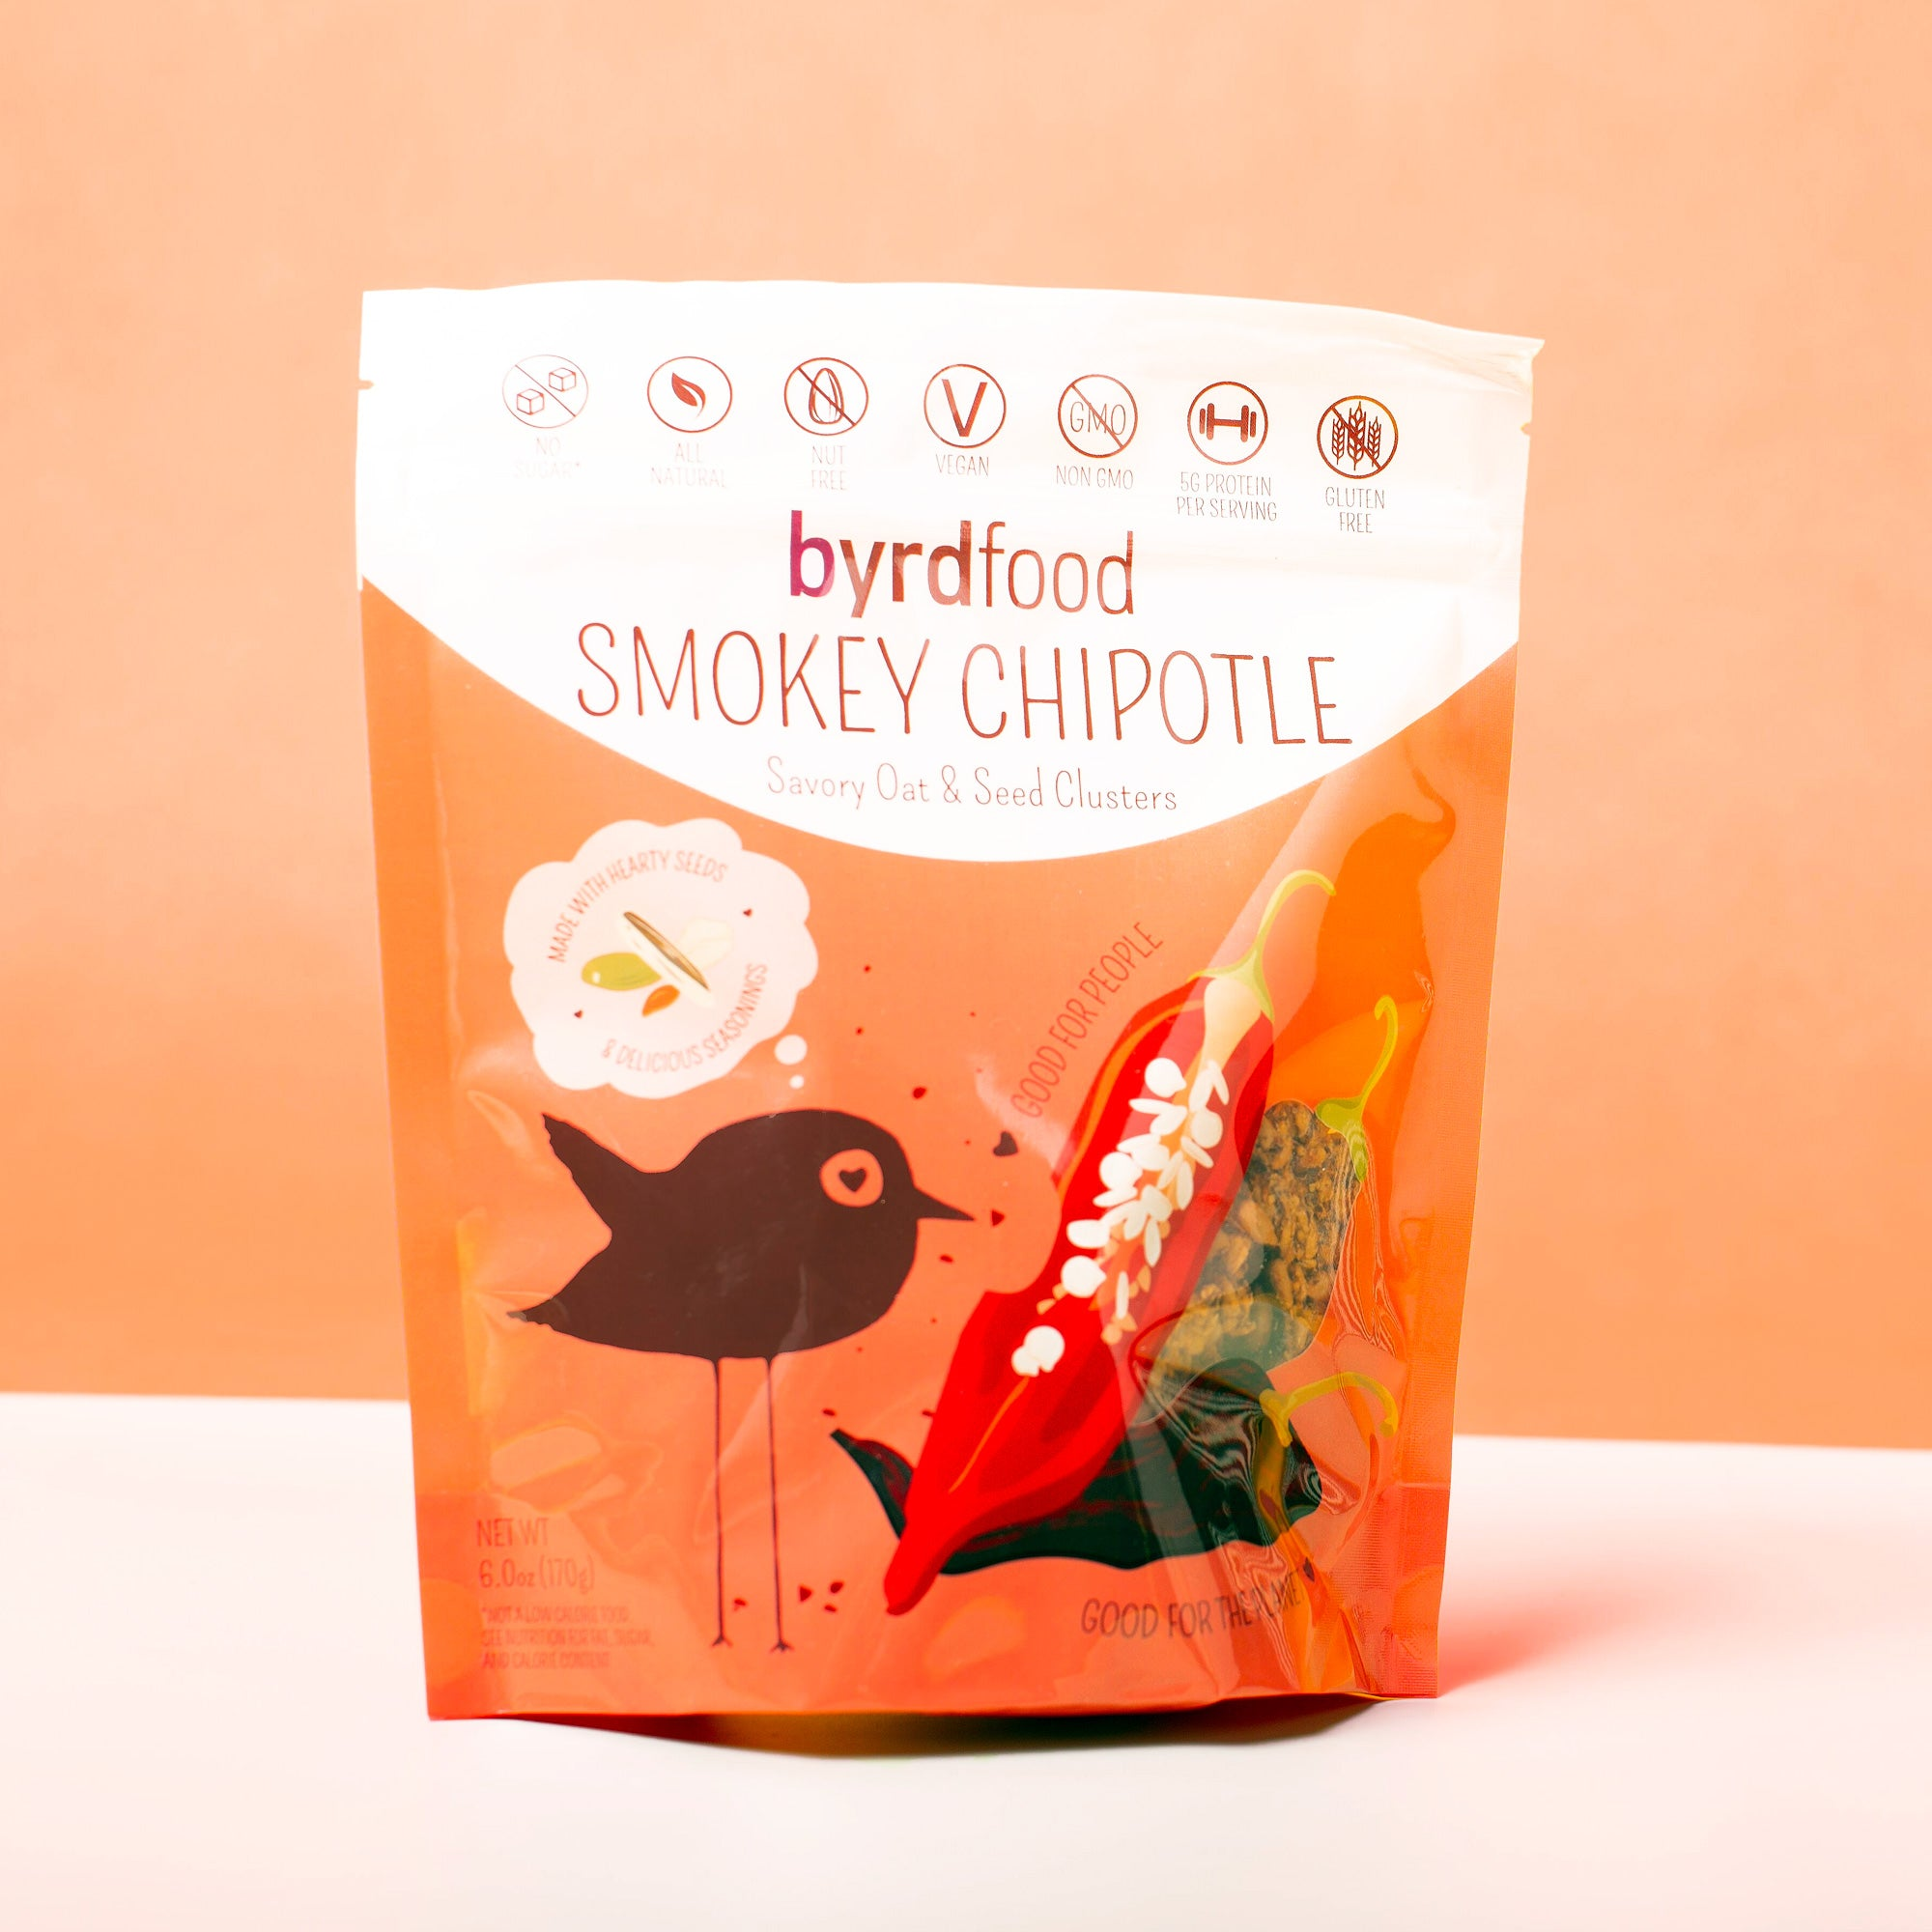 Smokey Chipotle